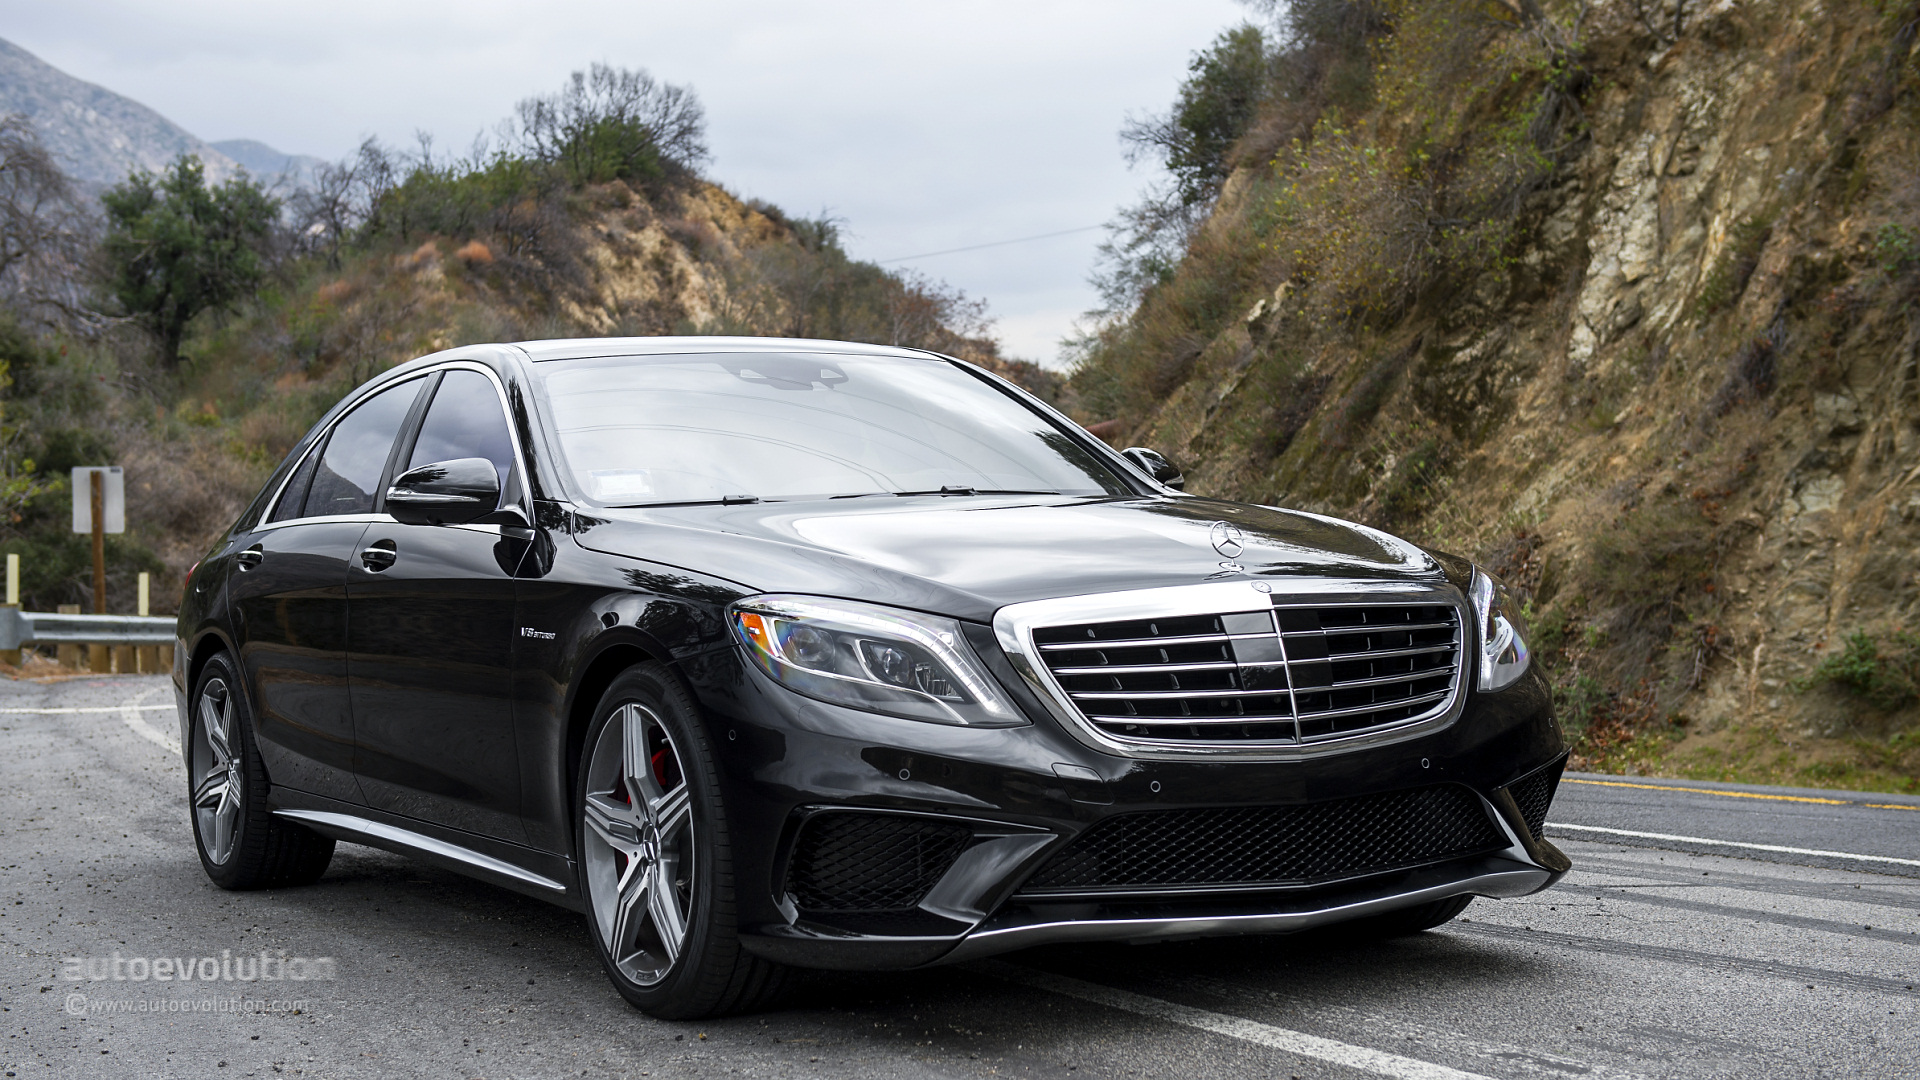 Mercedes benz s63 amg 4matic review autoevolution for Mercedes benz s 63 amg